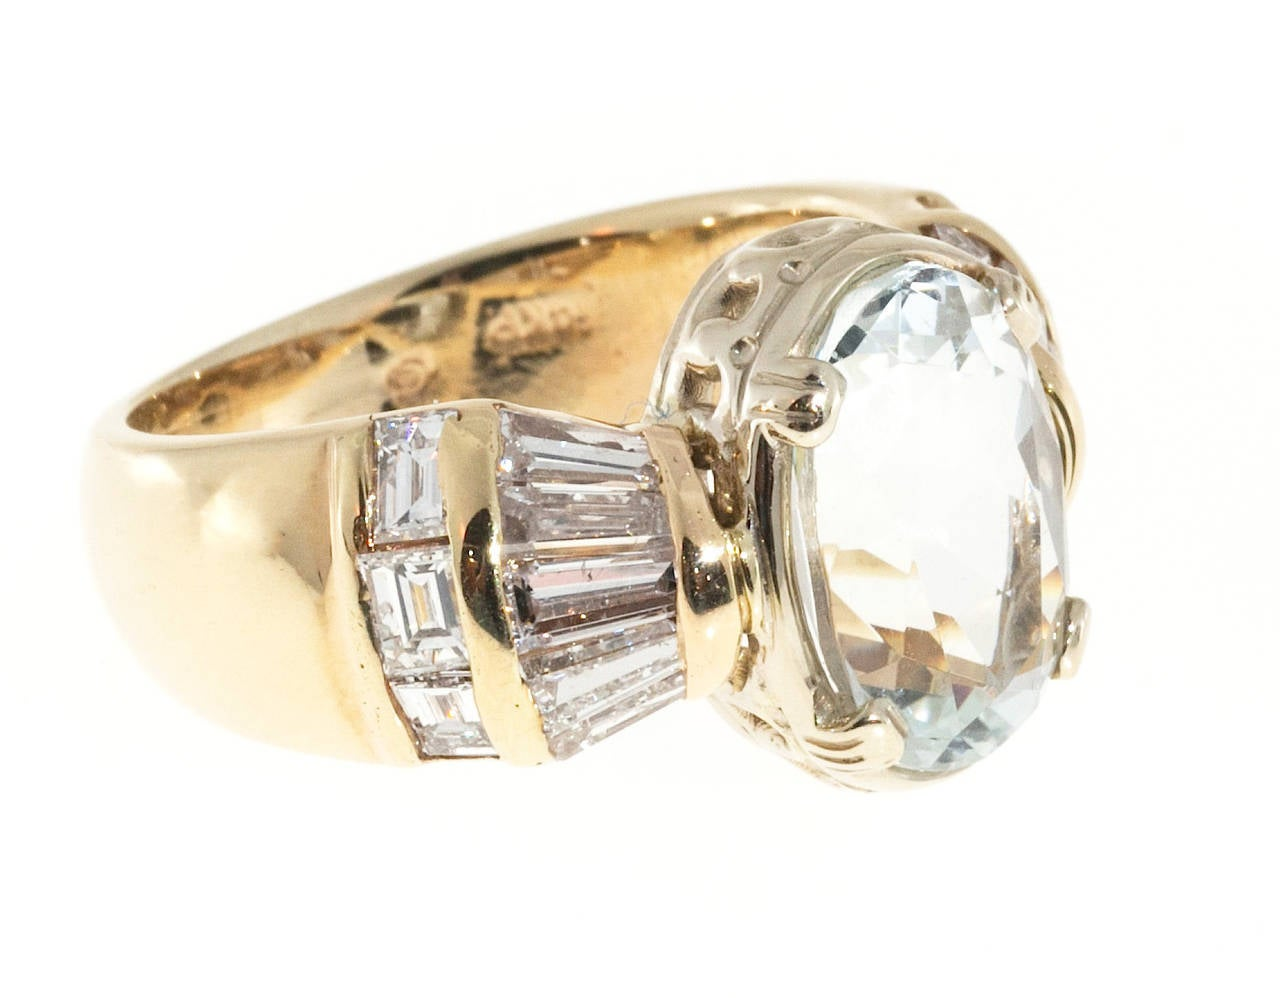 The center of this ring contains an aquamarine It is a  well cut clear Aquamarine, almost colorless and very bright. else. The stone is actually a very very pale blue. The  ring pulls all visual attention into the center stone. The shoulders of the